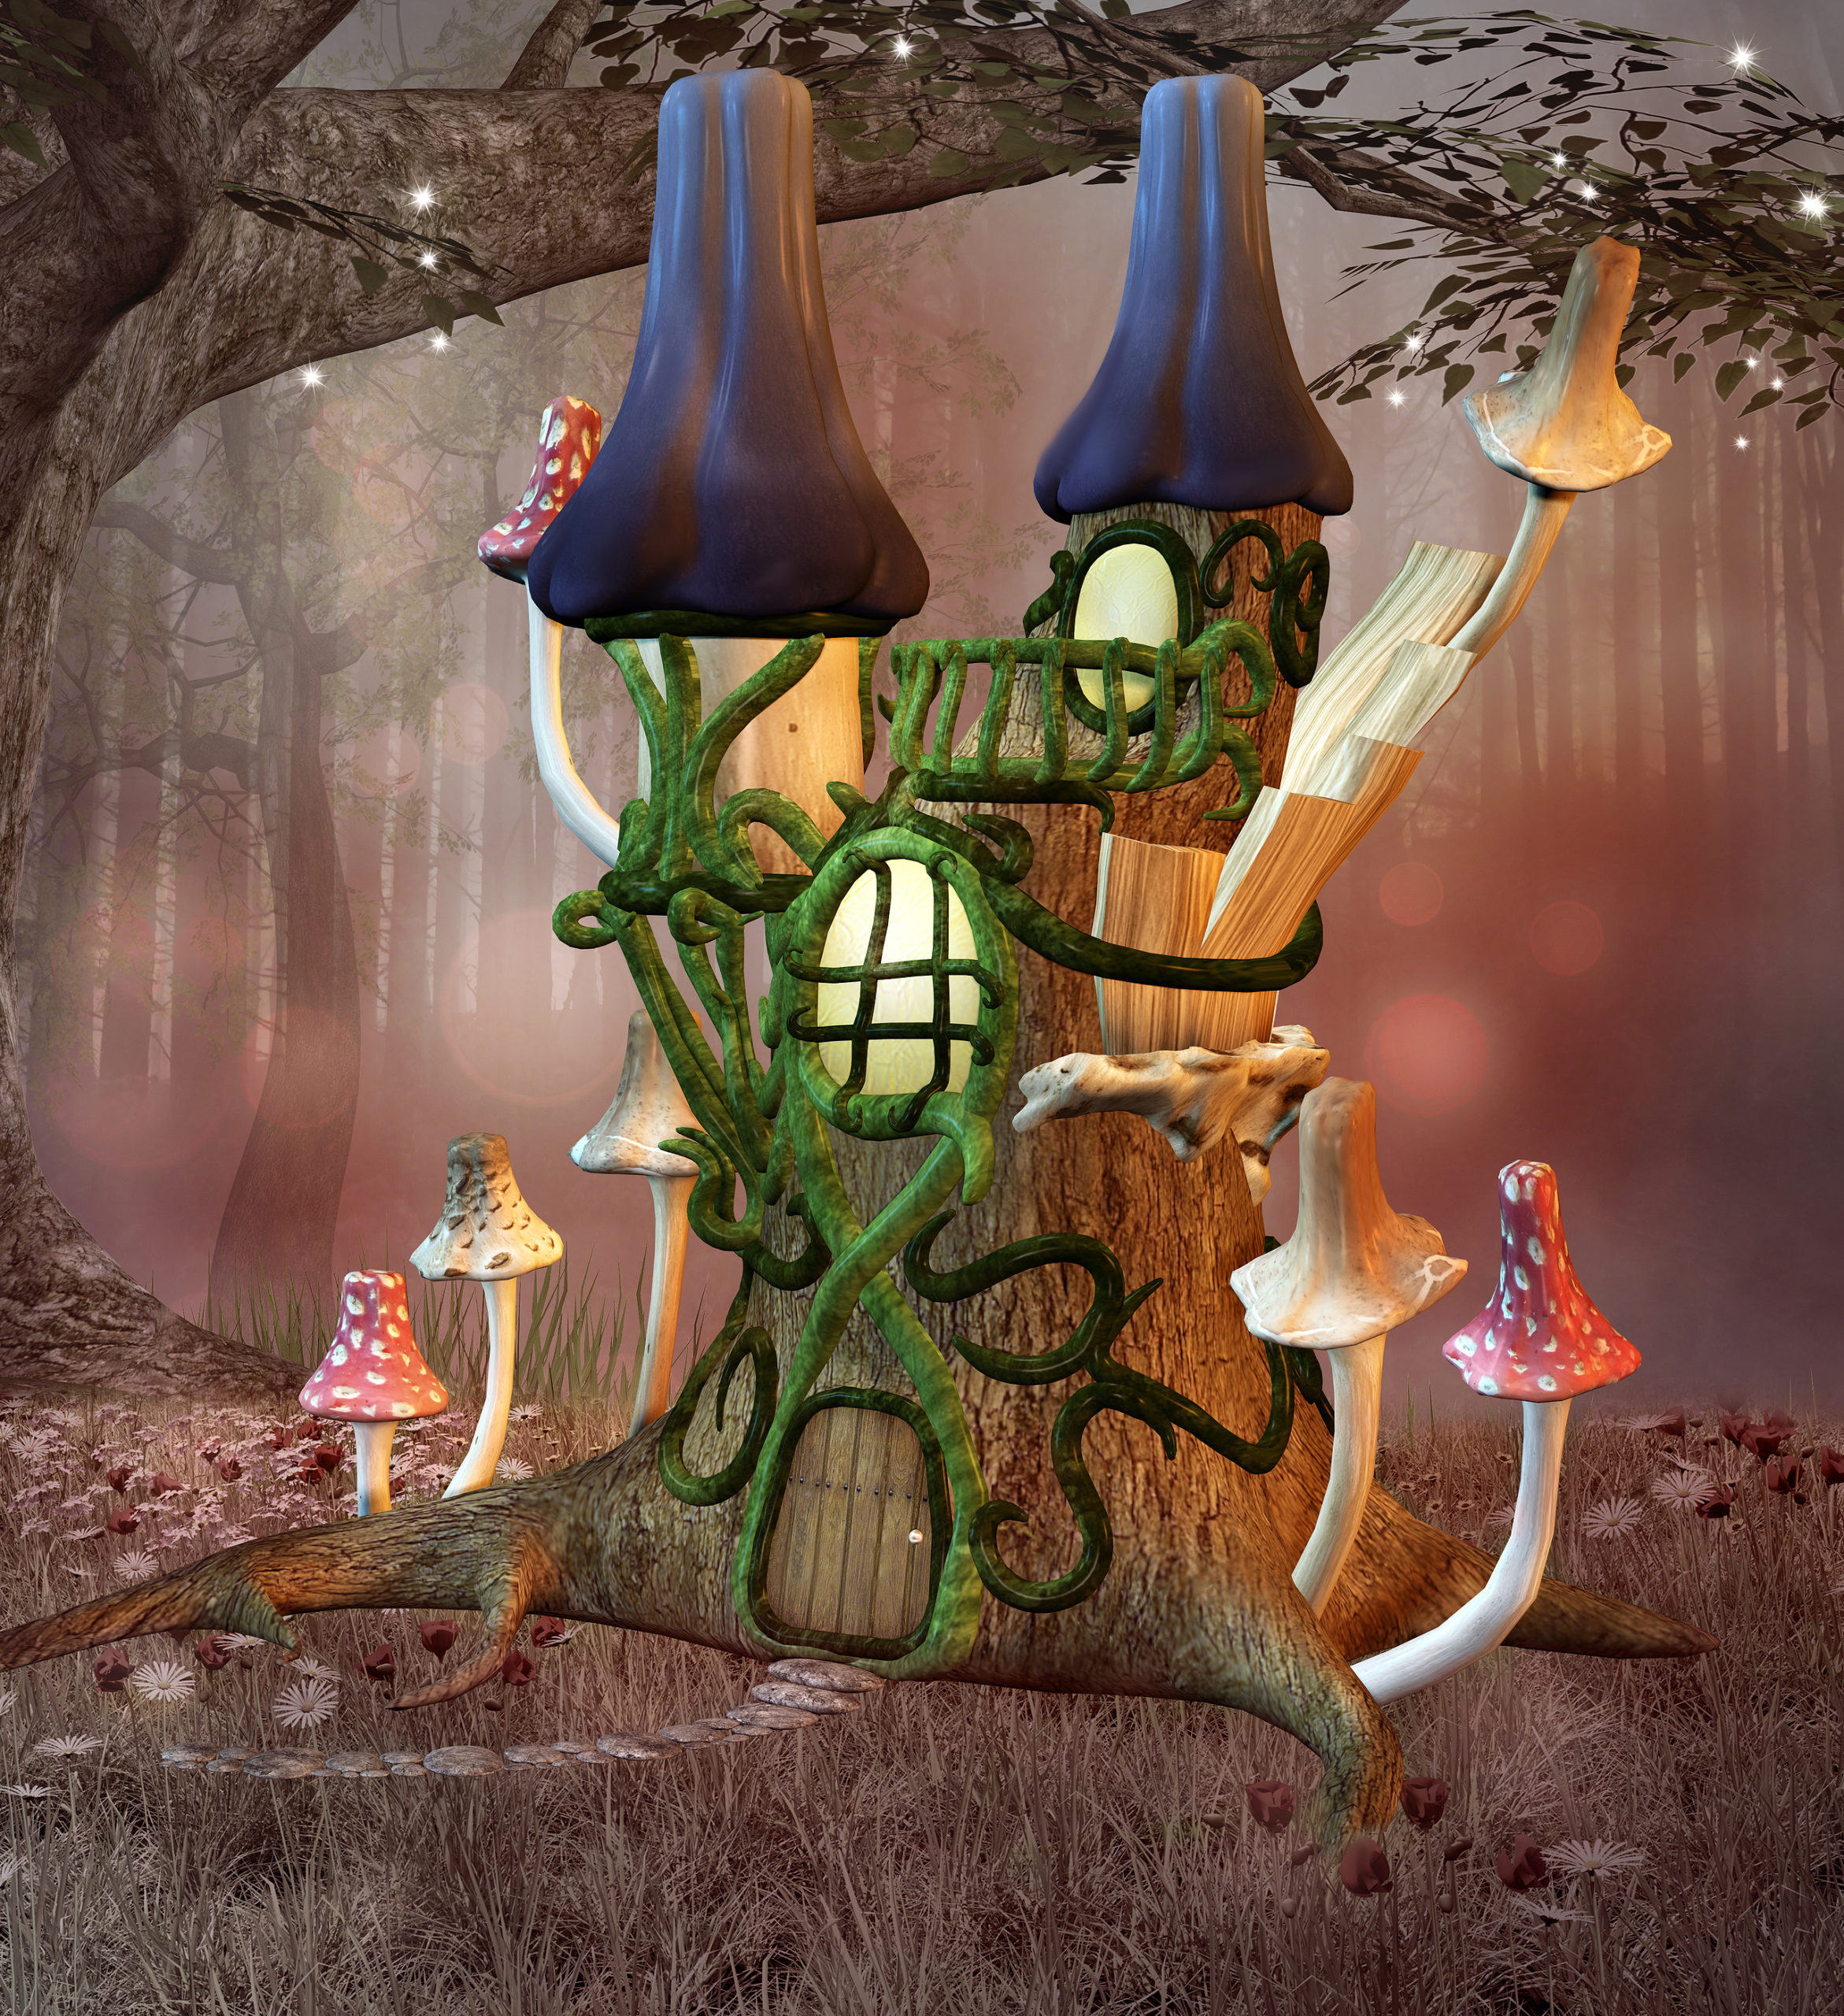 Fairy Tale Bizarre Fantasy Castle In A Glade With Mushrooms - 3d